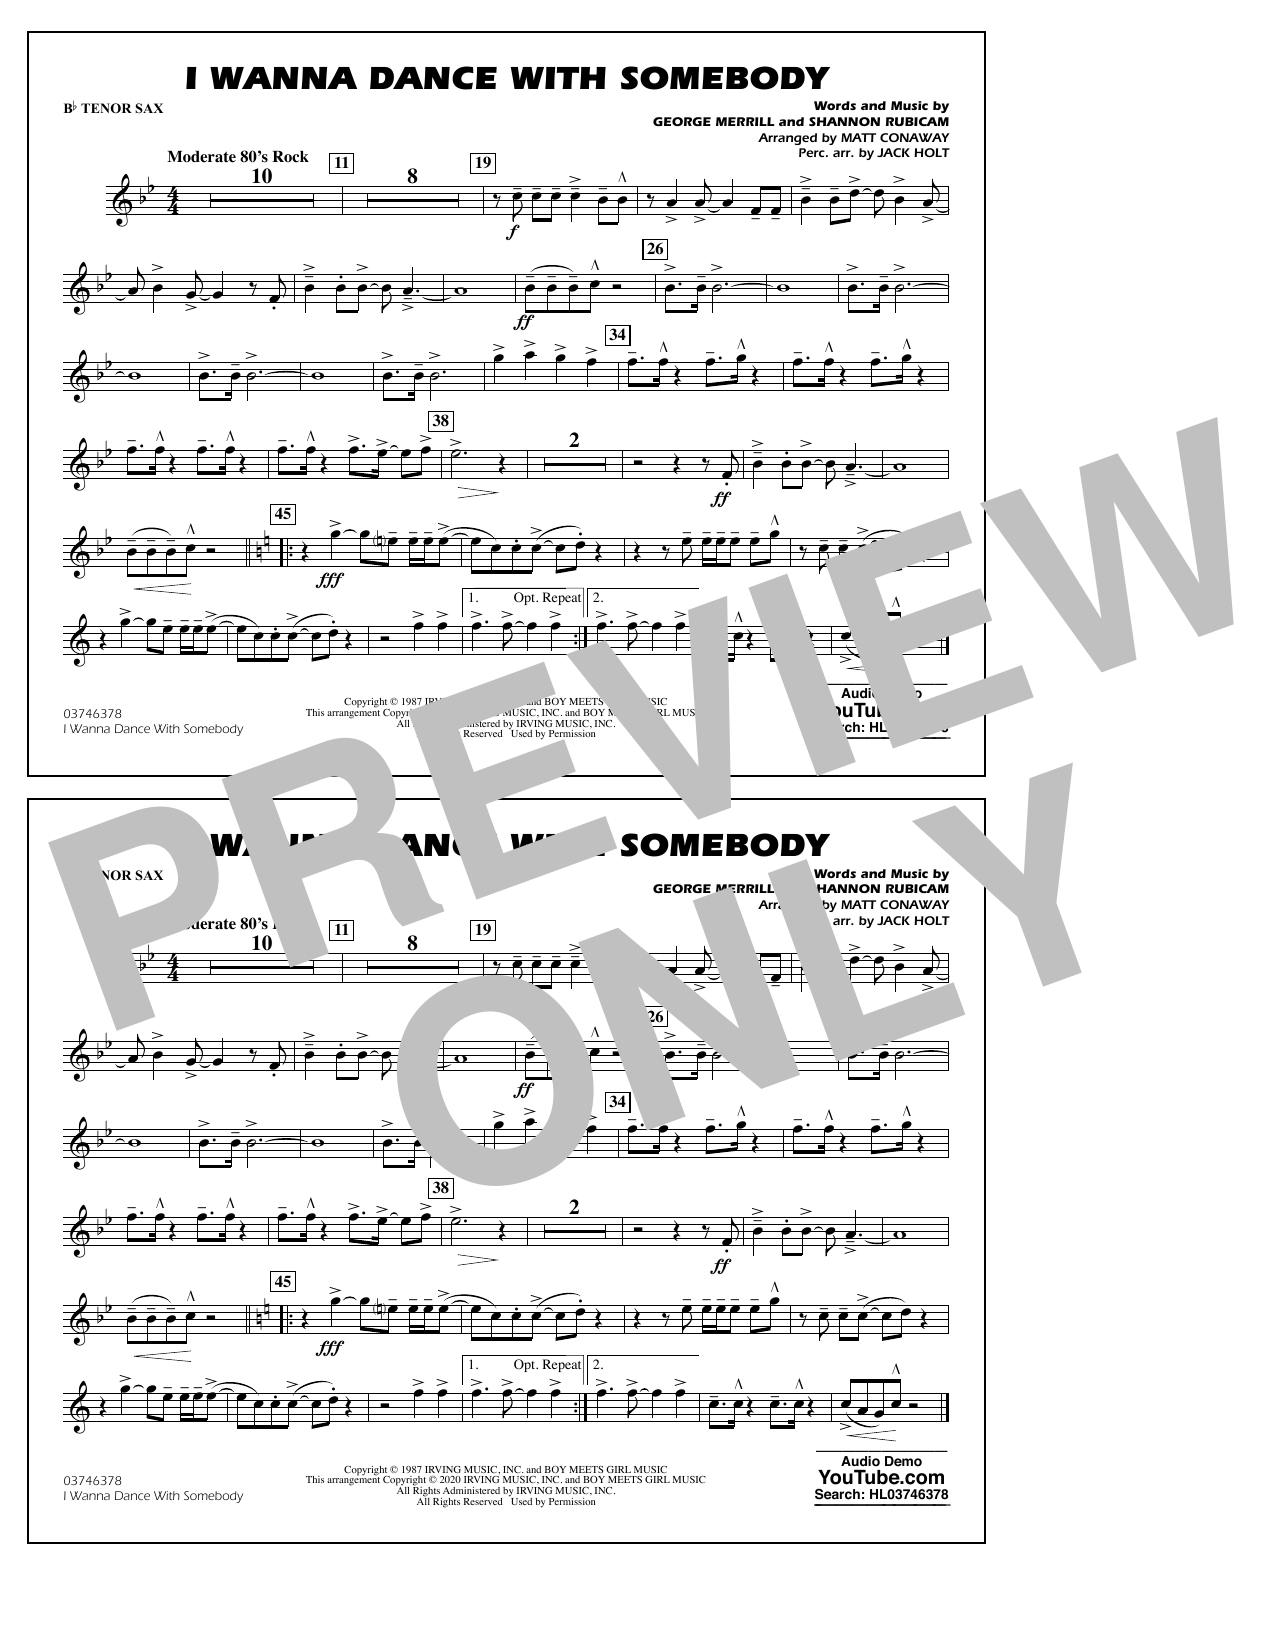 Whitney Houston I Wanna Dance with Somebody (arr. Conaway and Holt) - Bb Tenor Sax sheet music notes and chords. Download Printable PDF.